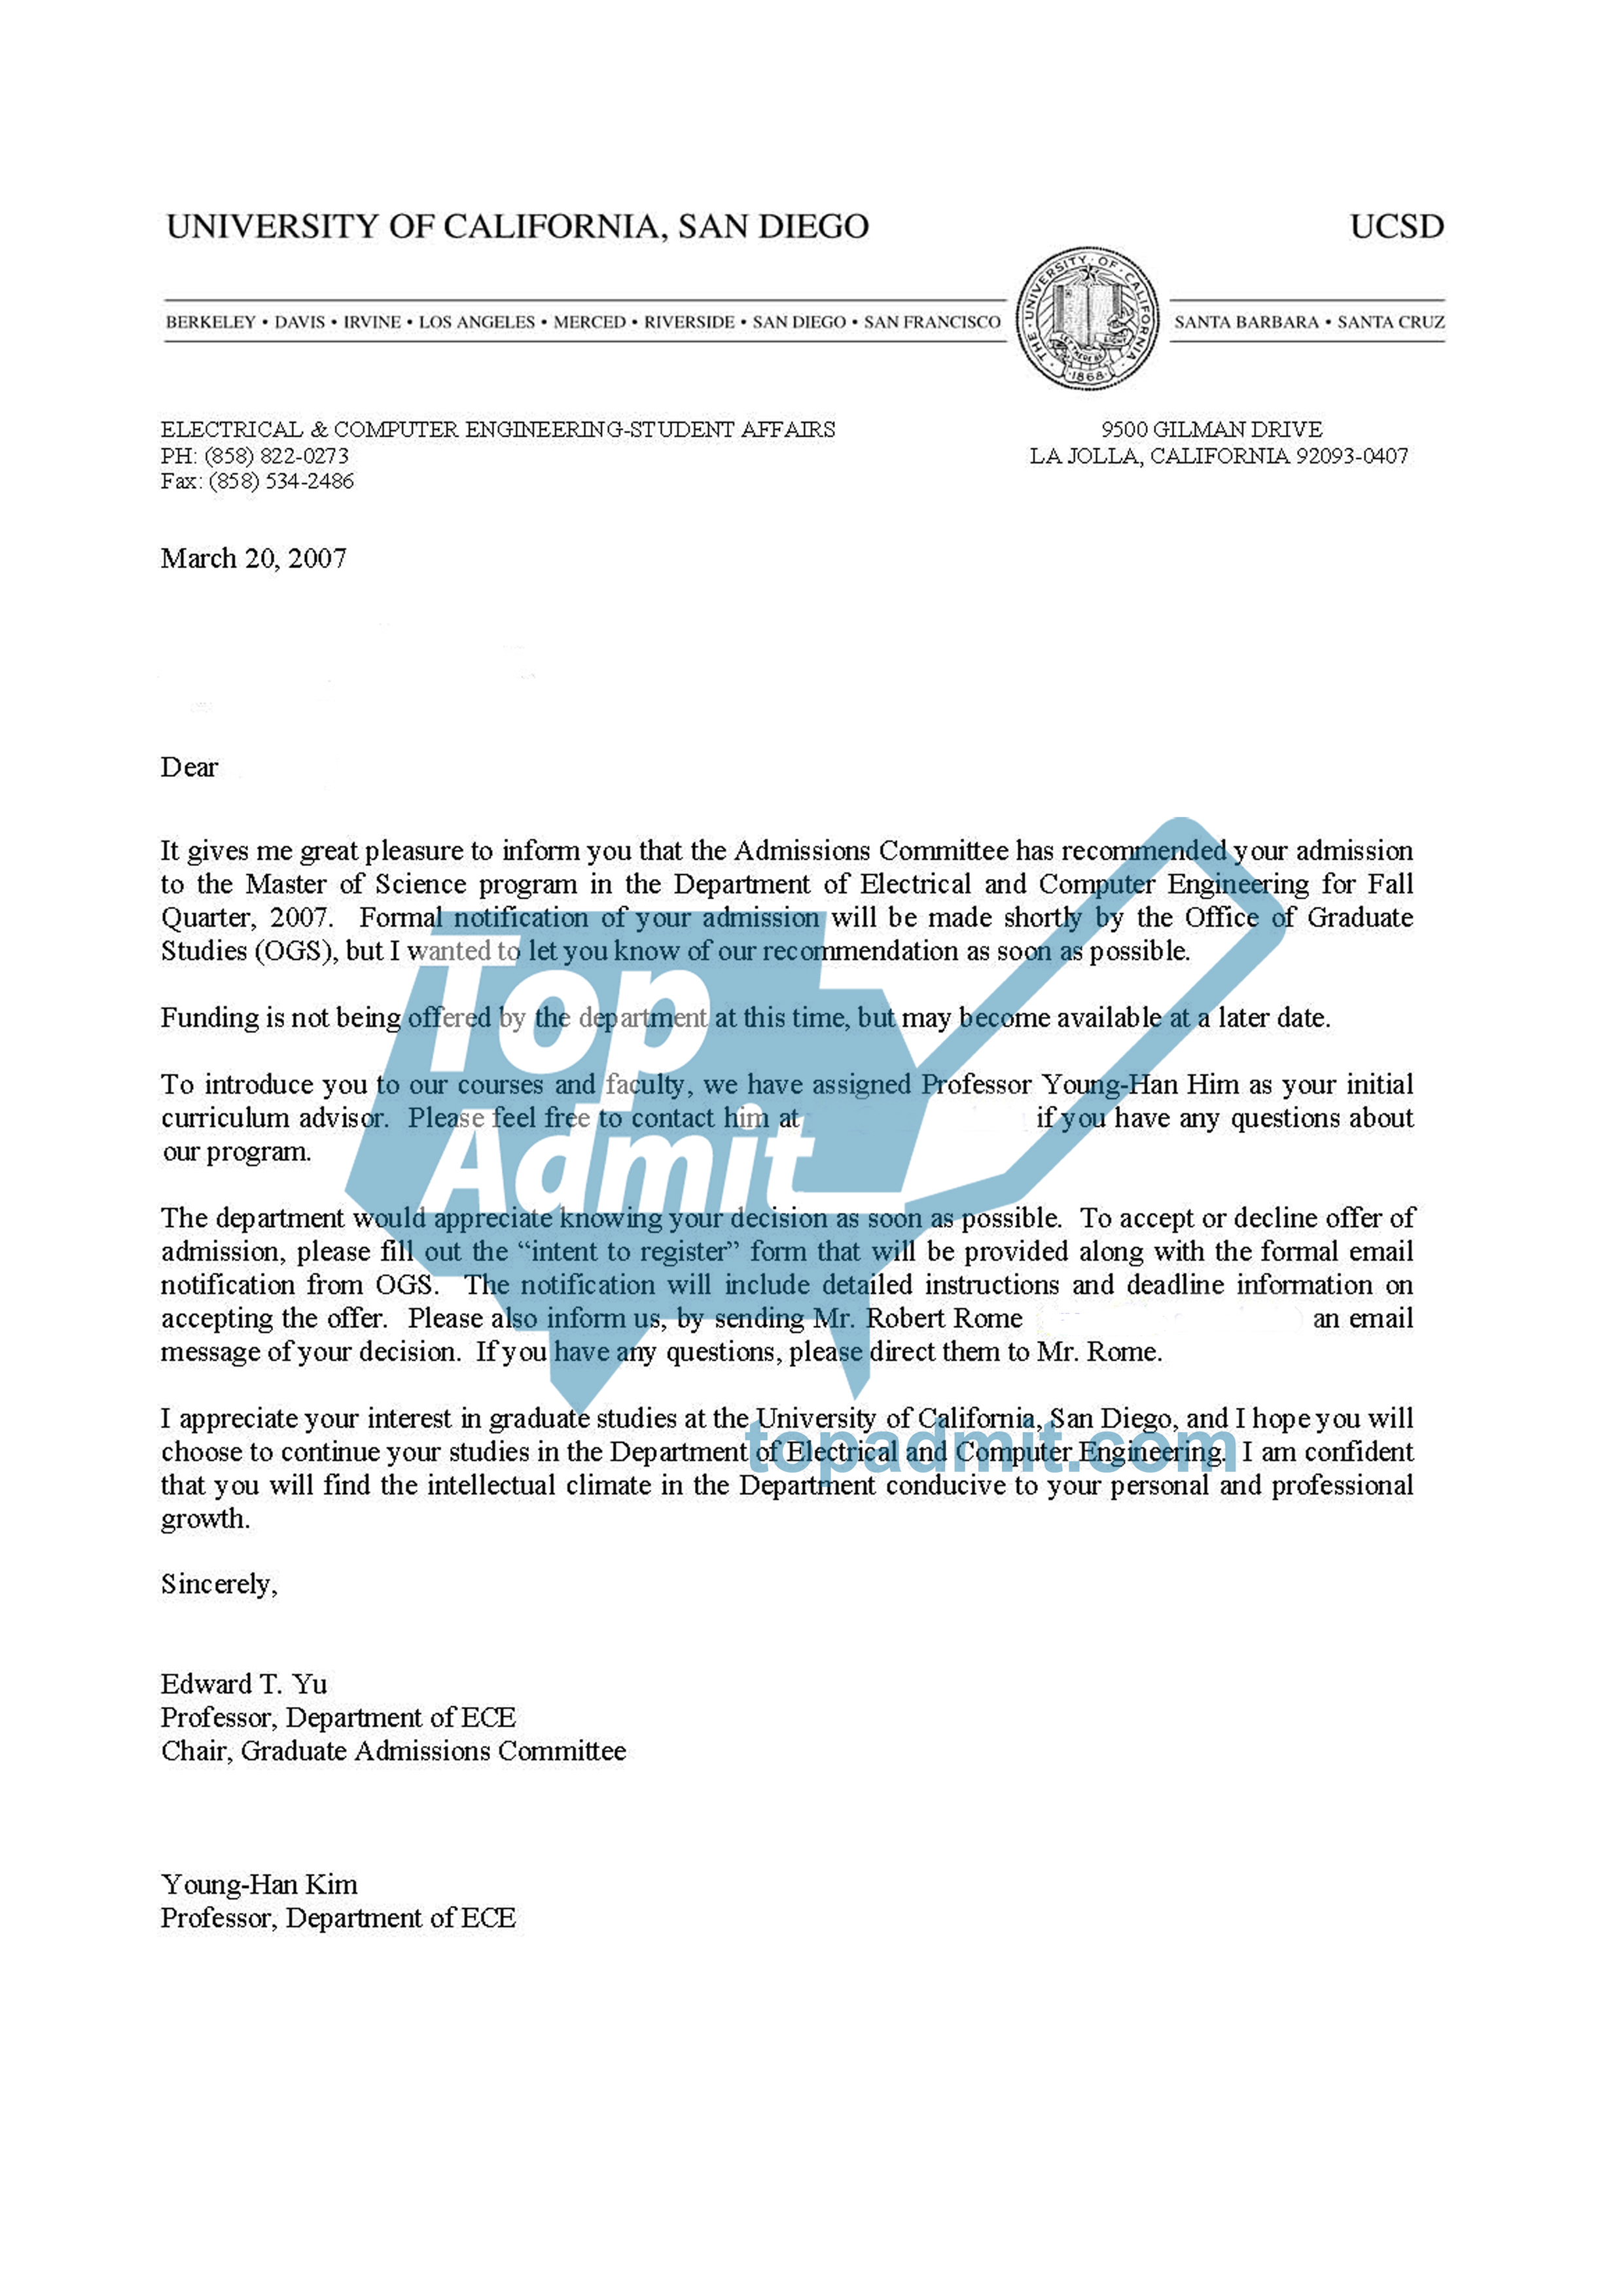 How to write a letter of re mendation for a student applying to